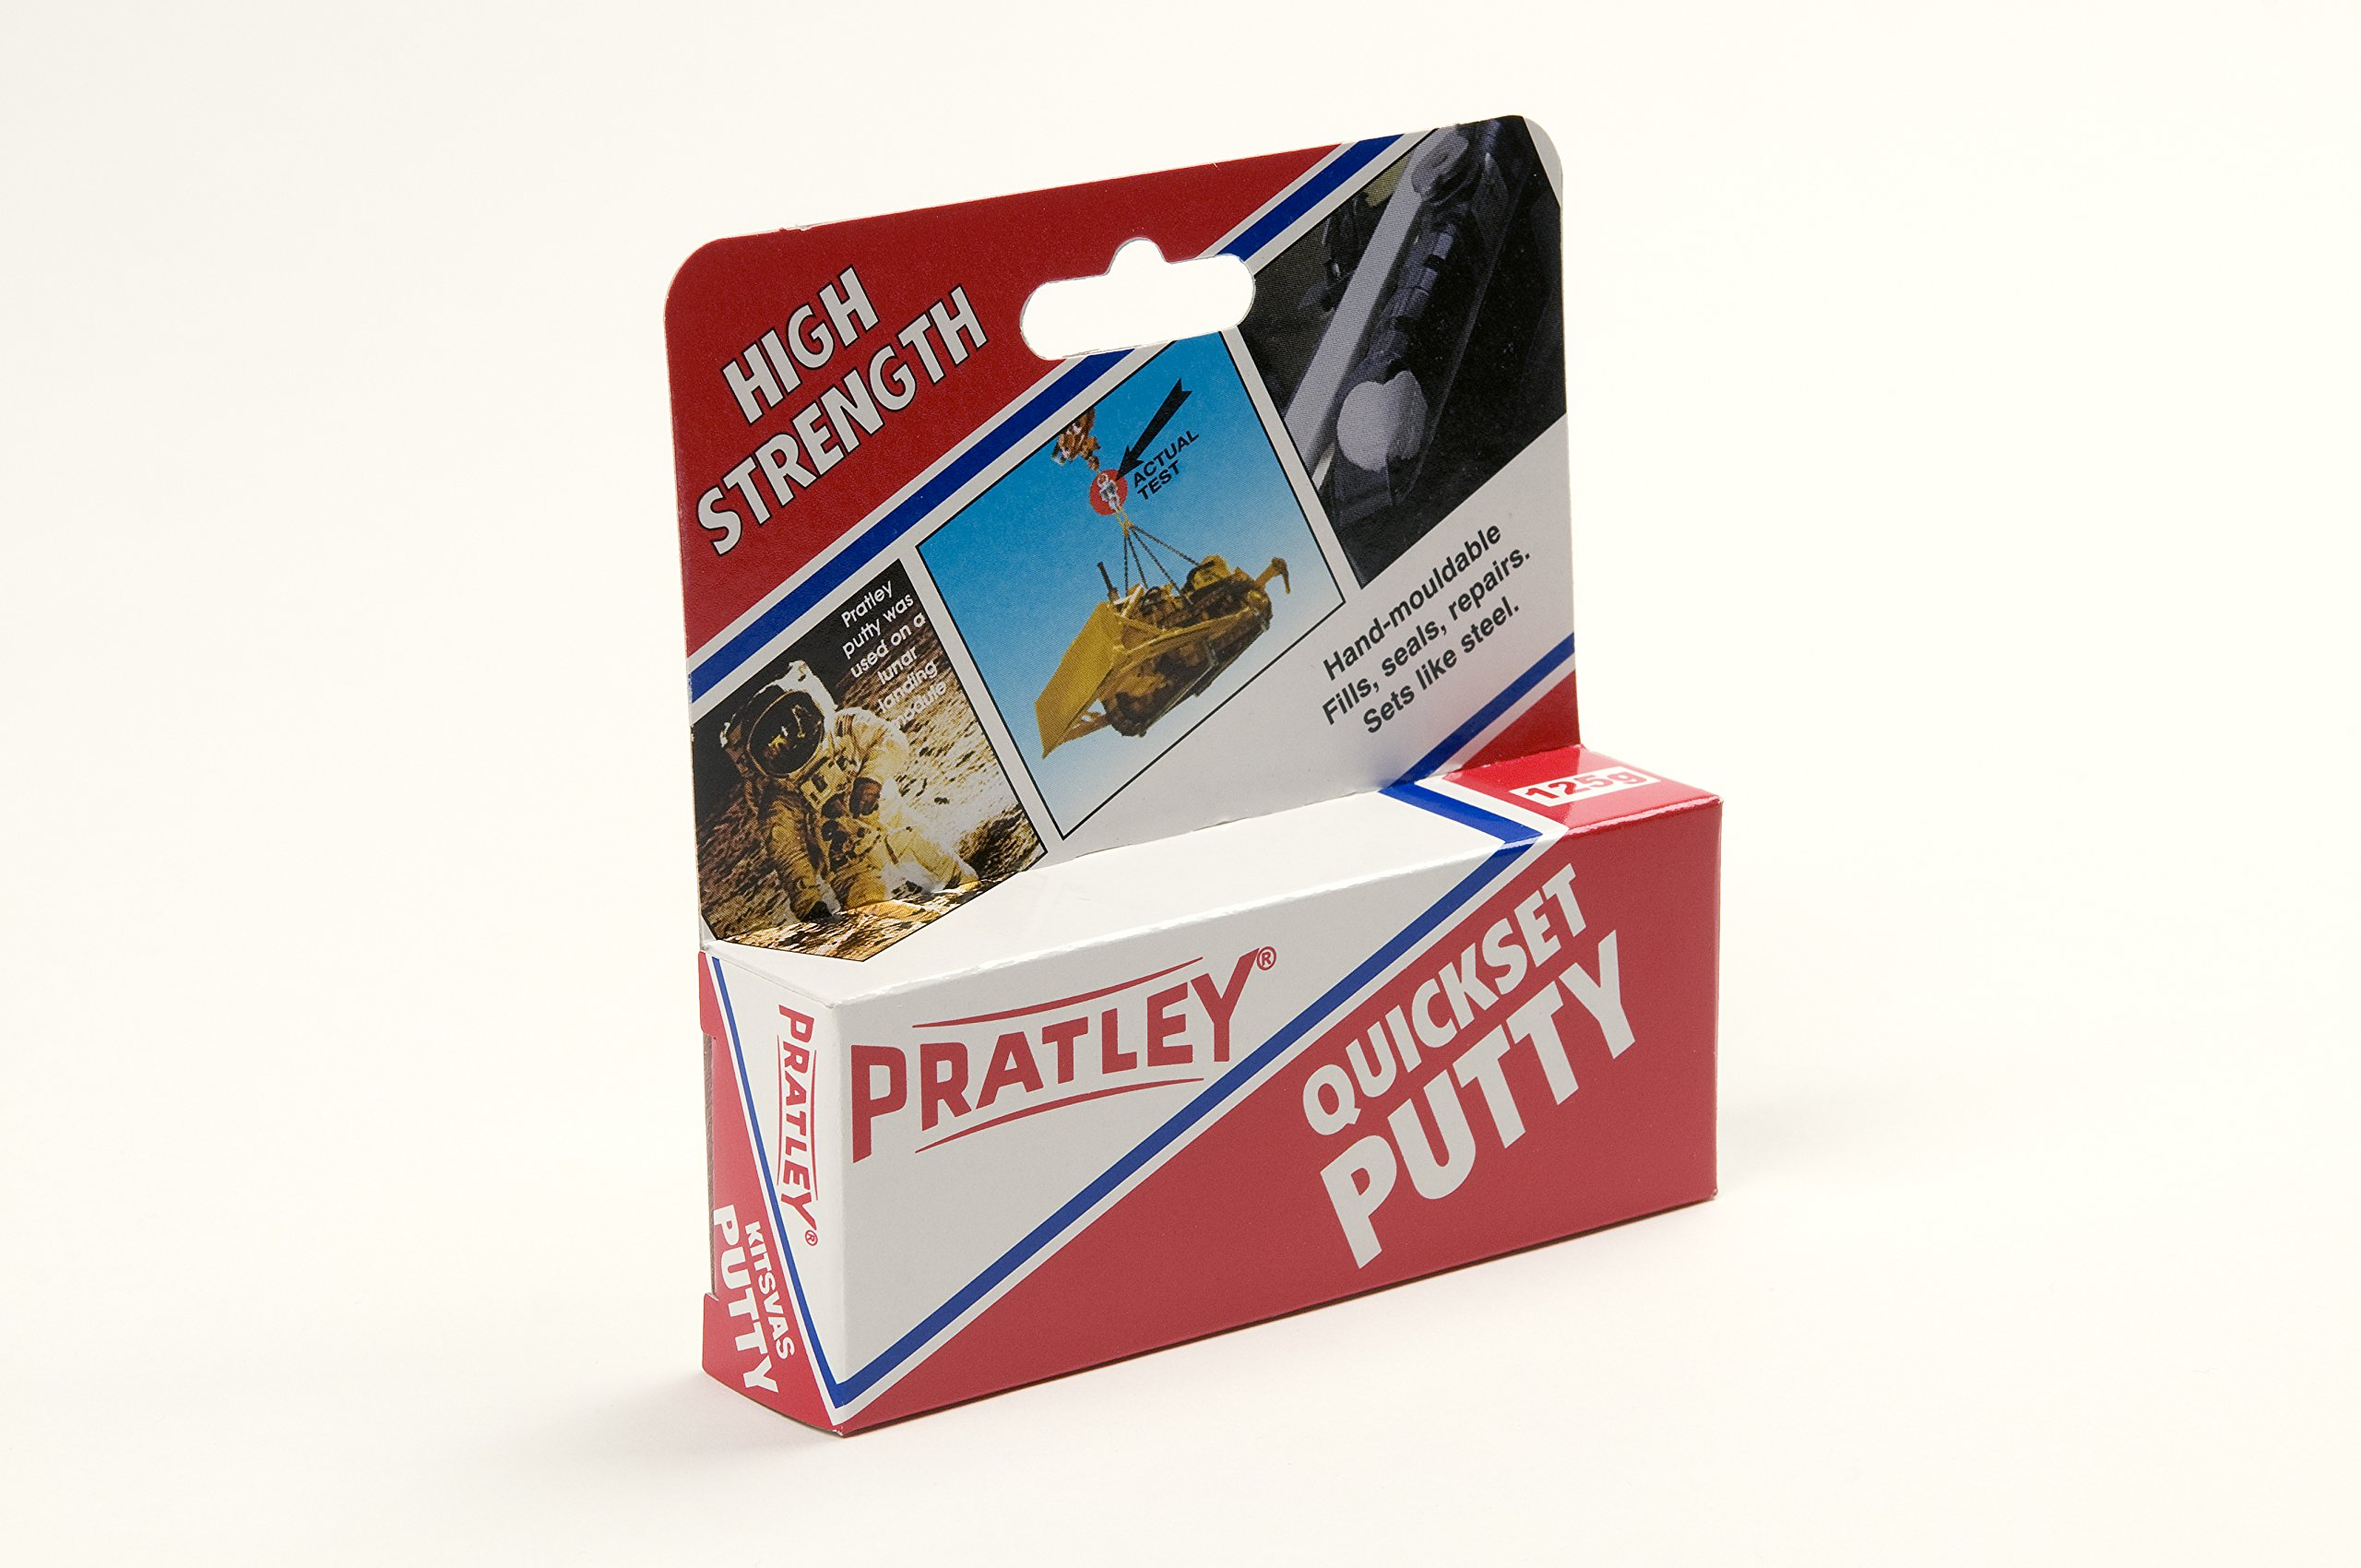 10 x Pratley Quick Set Adhesive Epoxy Putty 125g / 4.4 ounces 84135 New by Pratley